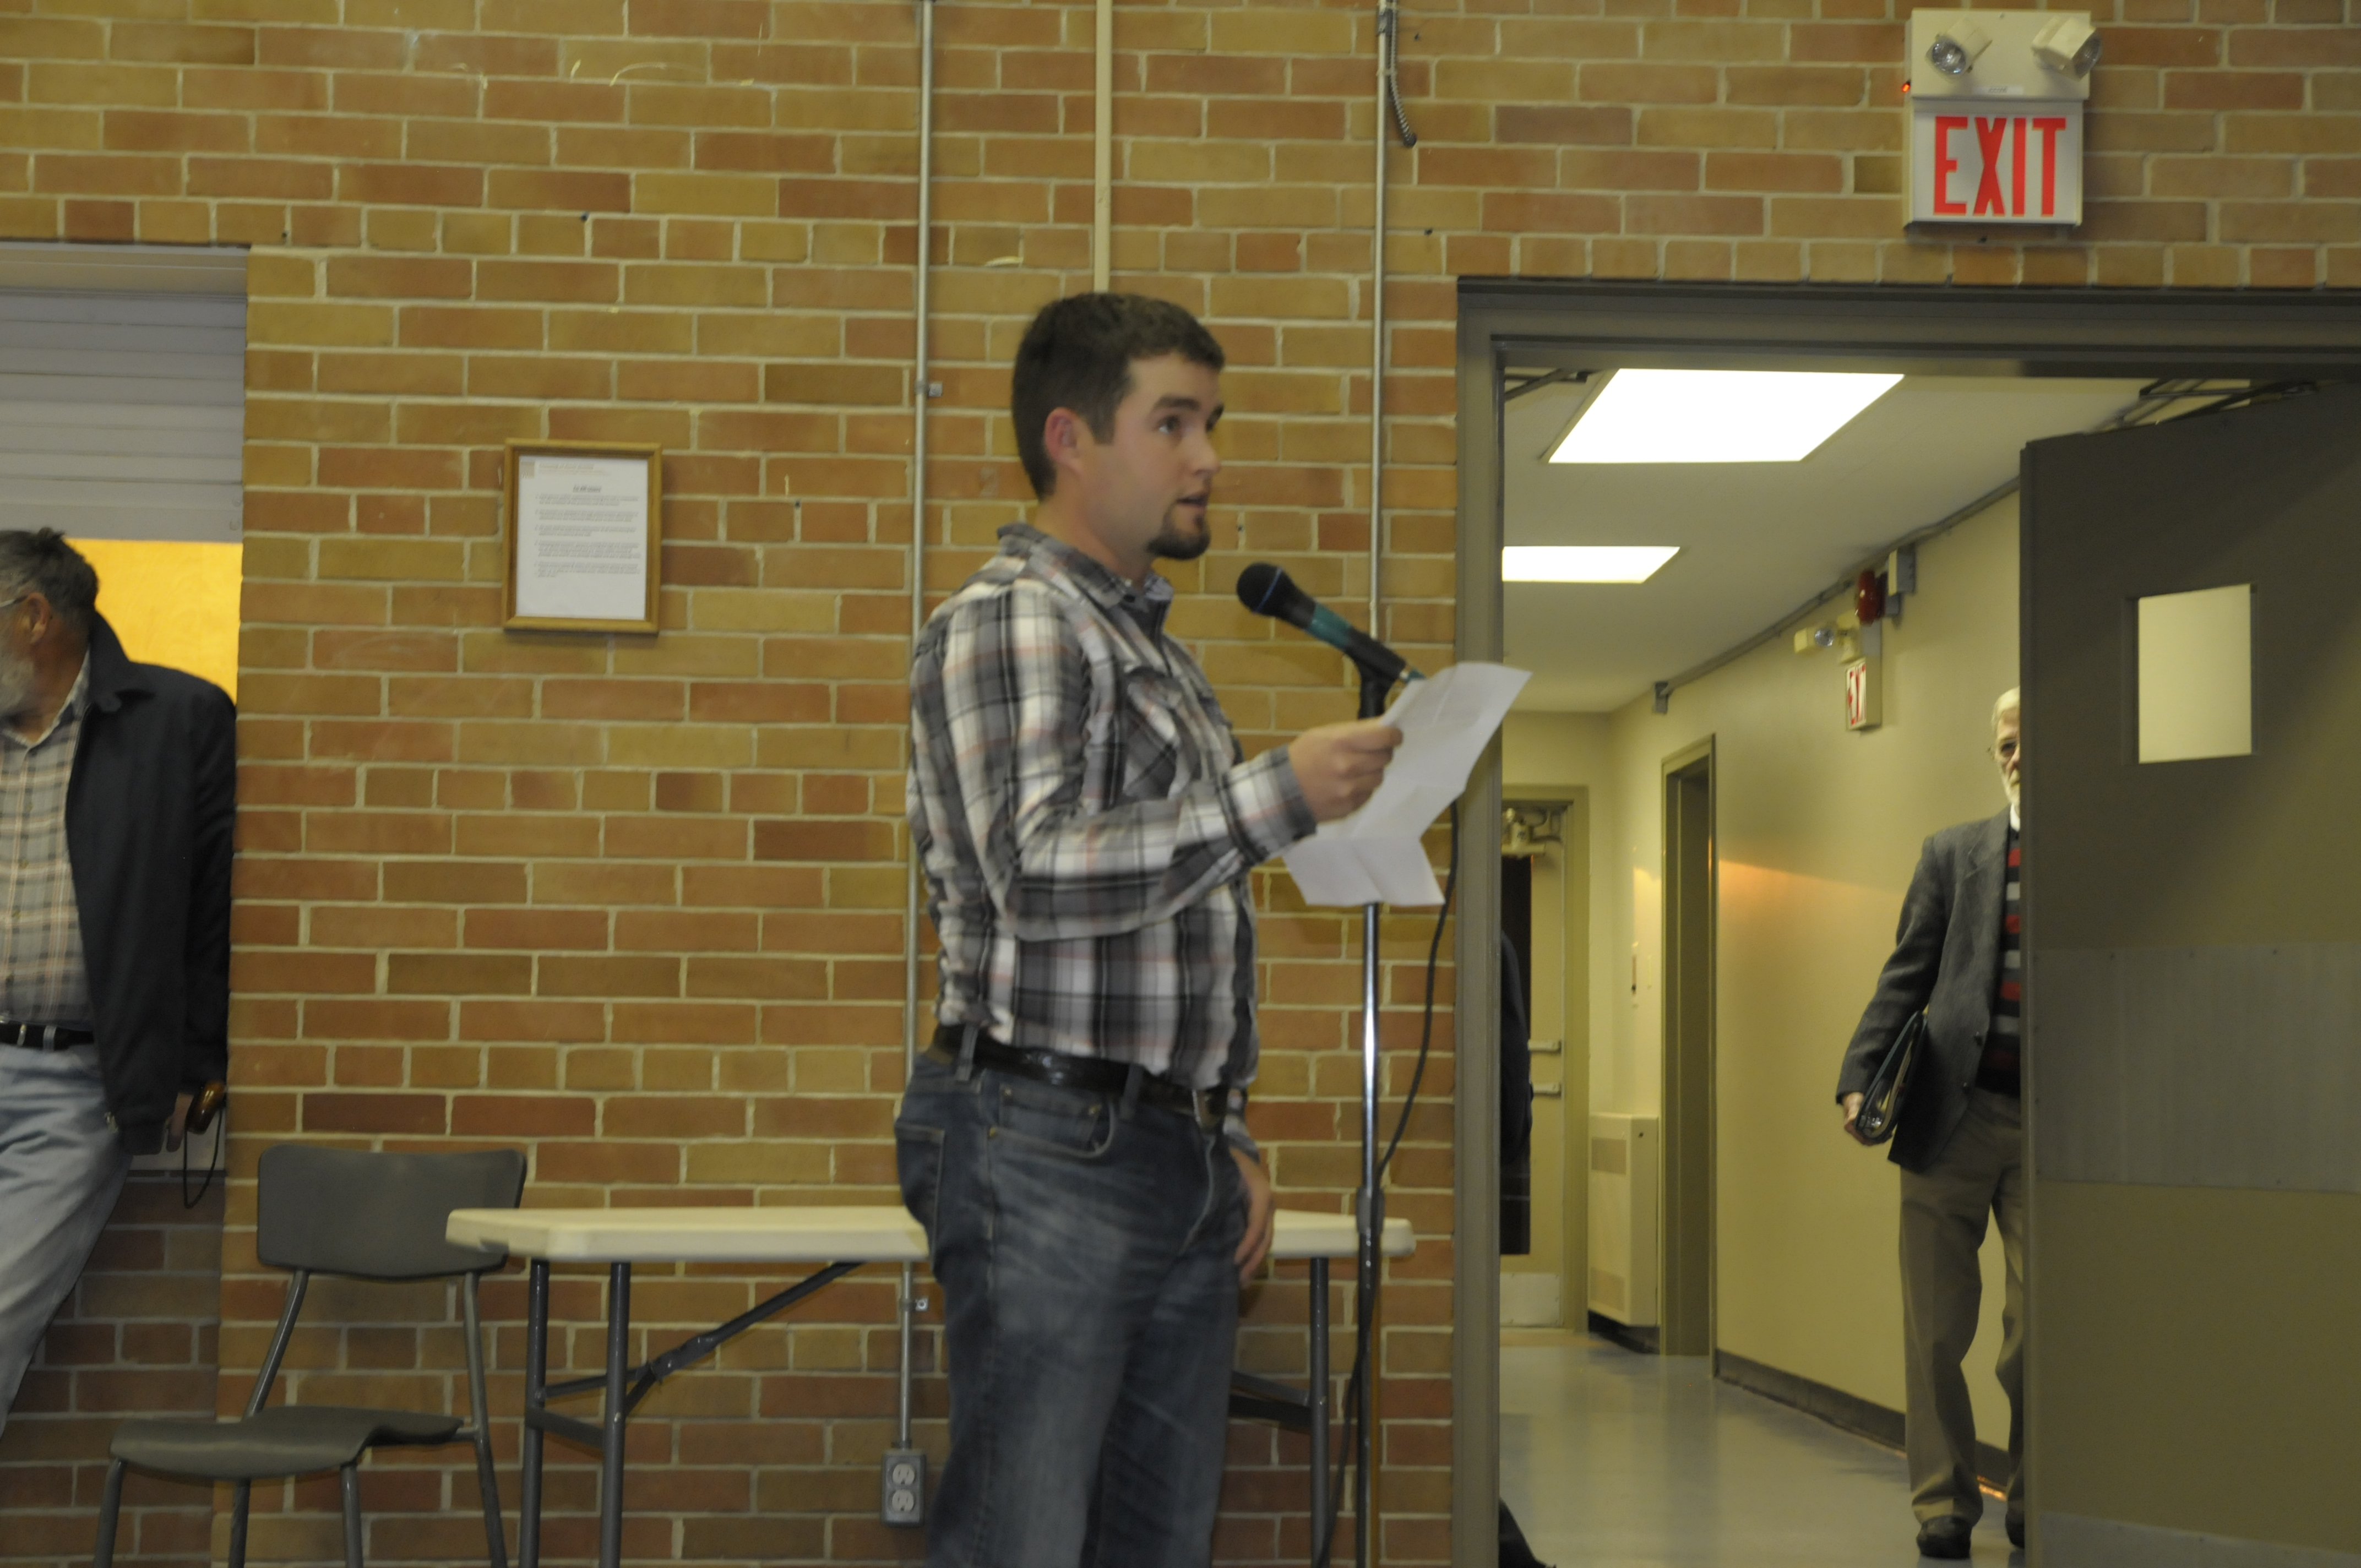 Glen Becker farmer Warren Schneckenburger questions council candidates on their support for a grain terminal project on Lakeshore Dr. during the all-candidates debate Oct. 21 in Iroquois. (Cornwall Newswatch)